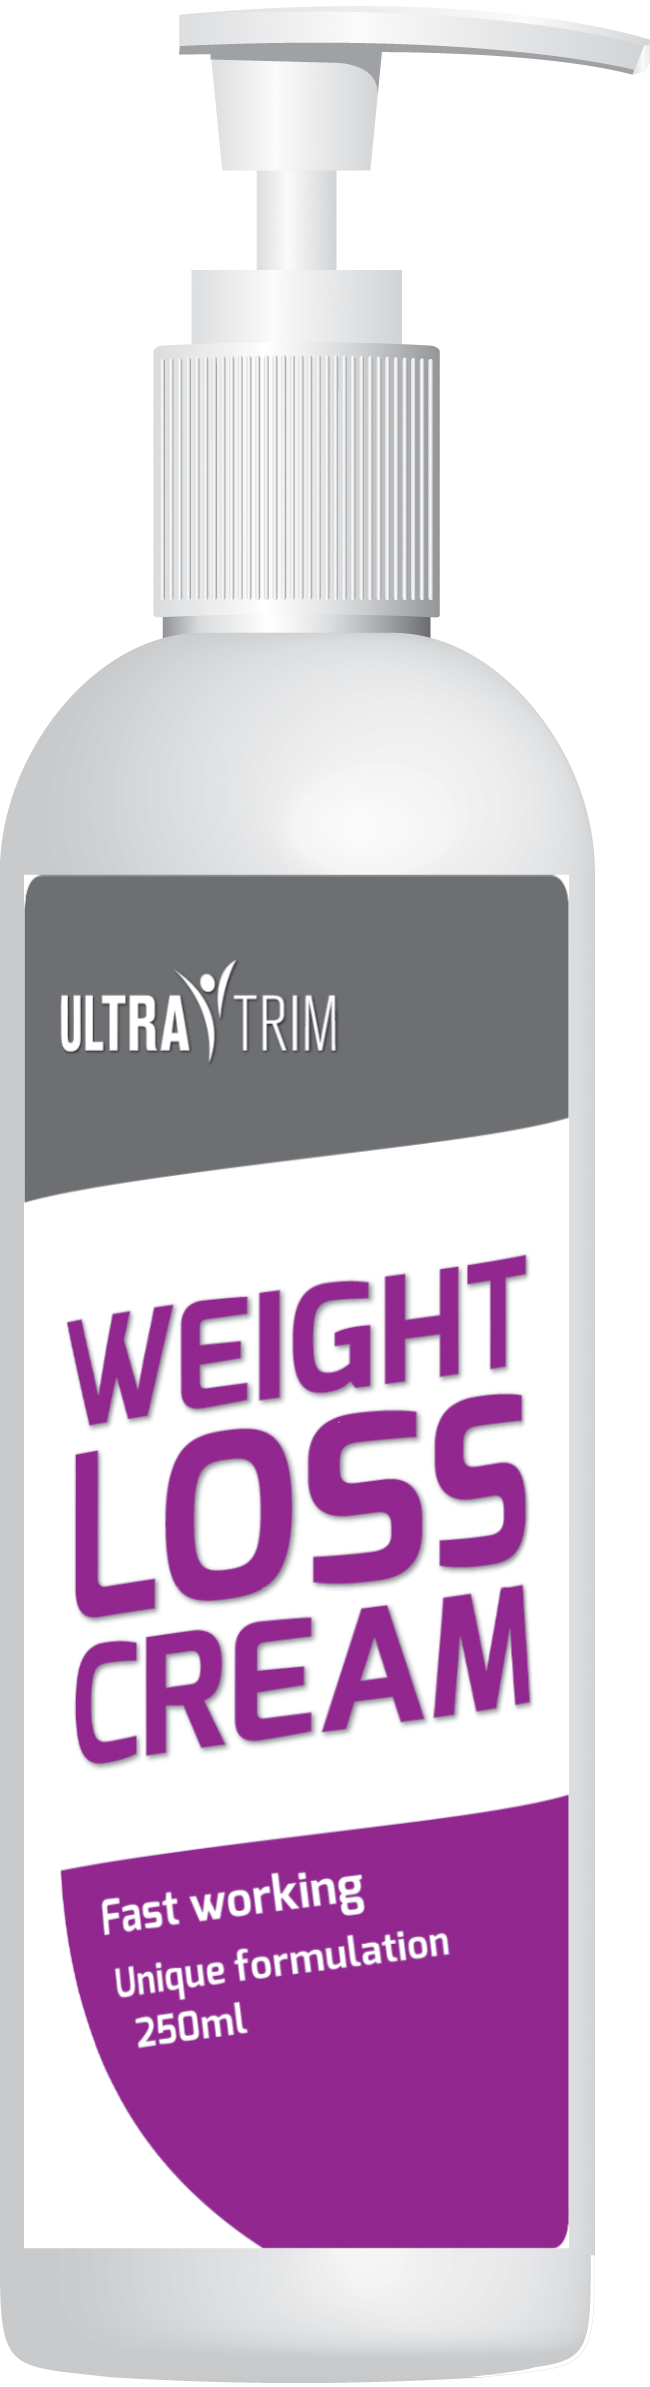 trim slim weight loss knoxville tn